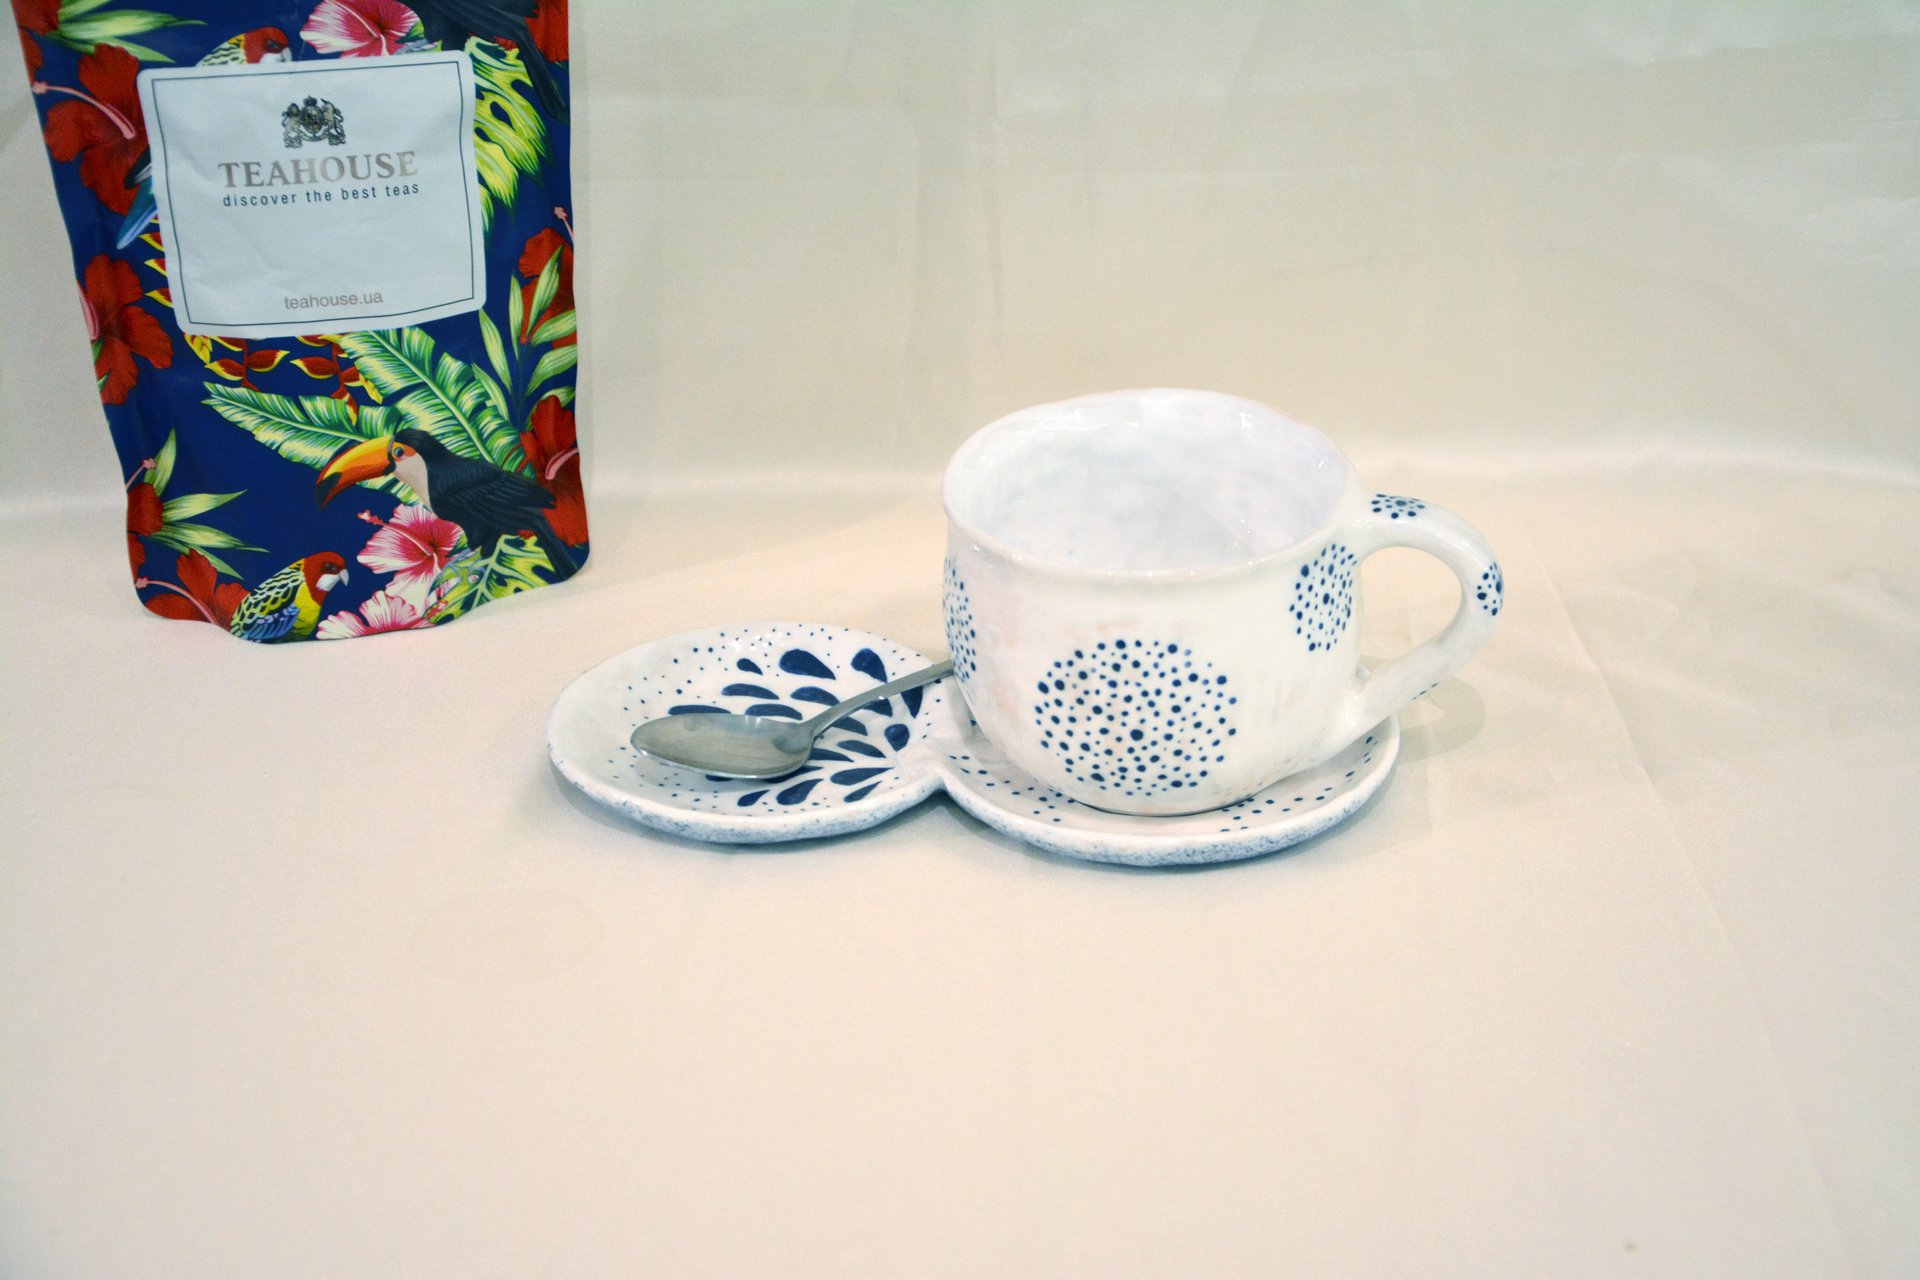 A pair of white cups with a blue Dot-Circle pattern - Cups, glasses, mugs, 300 ml and 200 ml, photo 4 of 4.